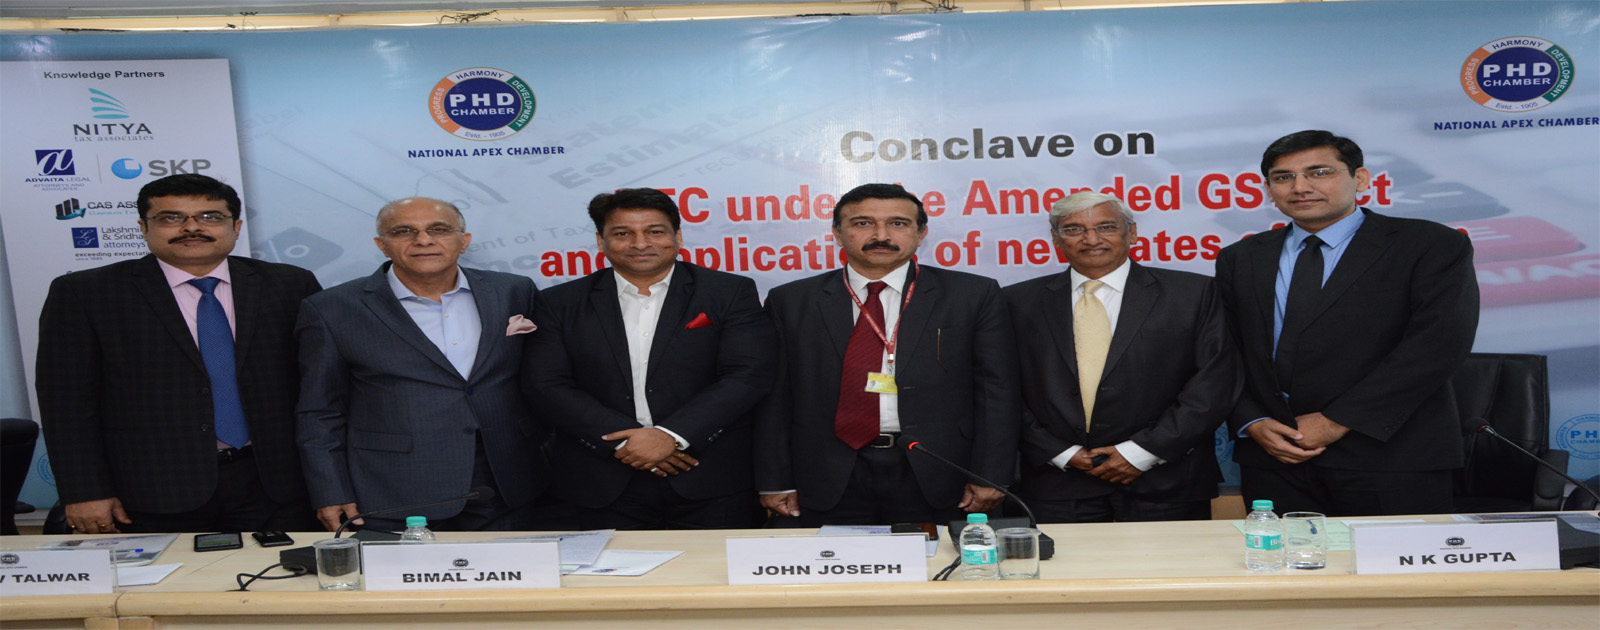 Conclave on ITC under the Amended GST Act and implications of new rates of GST on Real Estate and Construction Sector